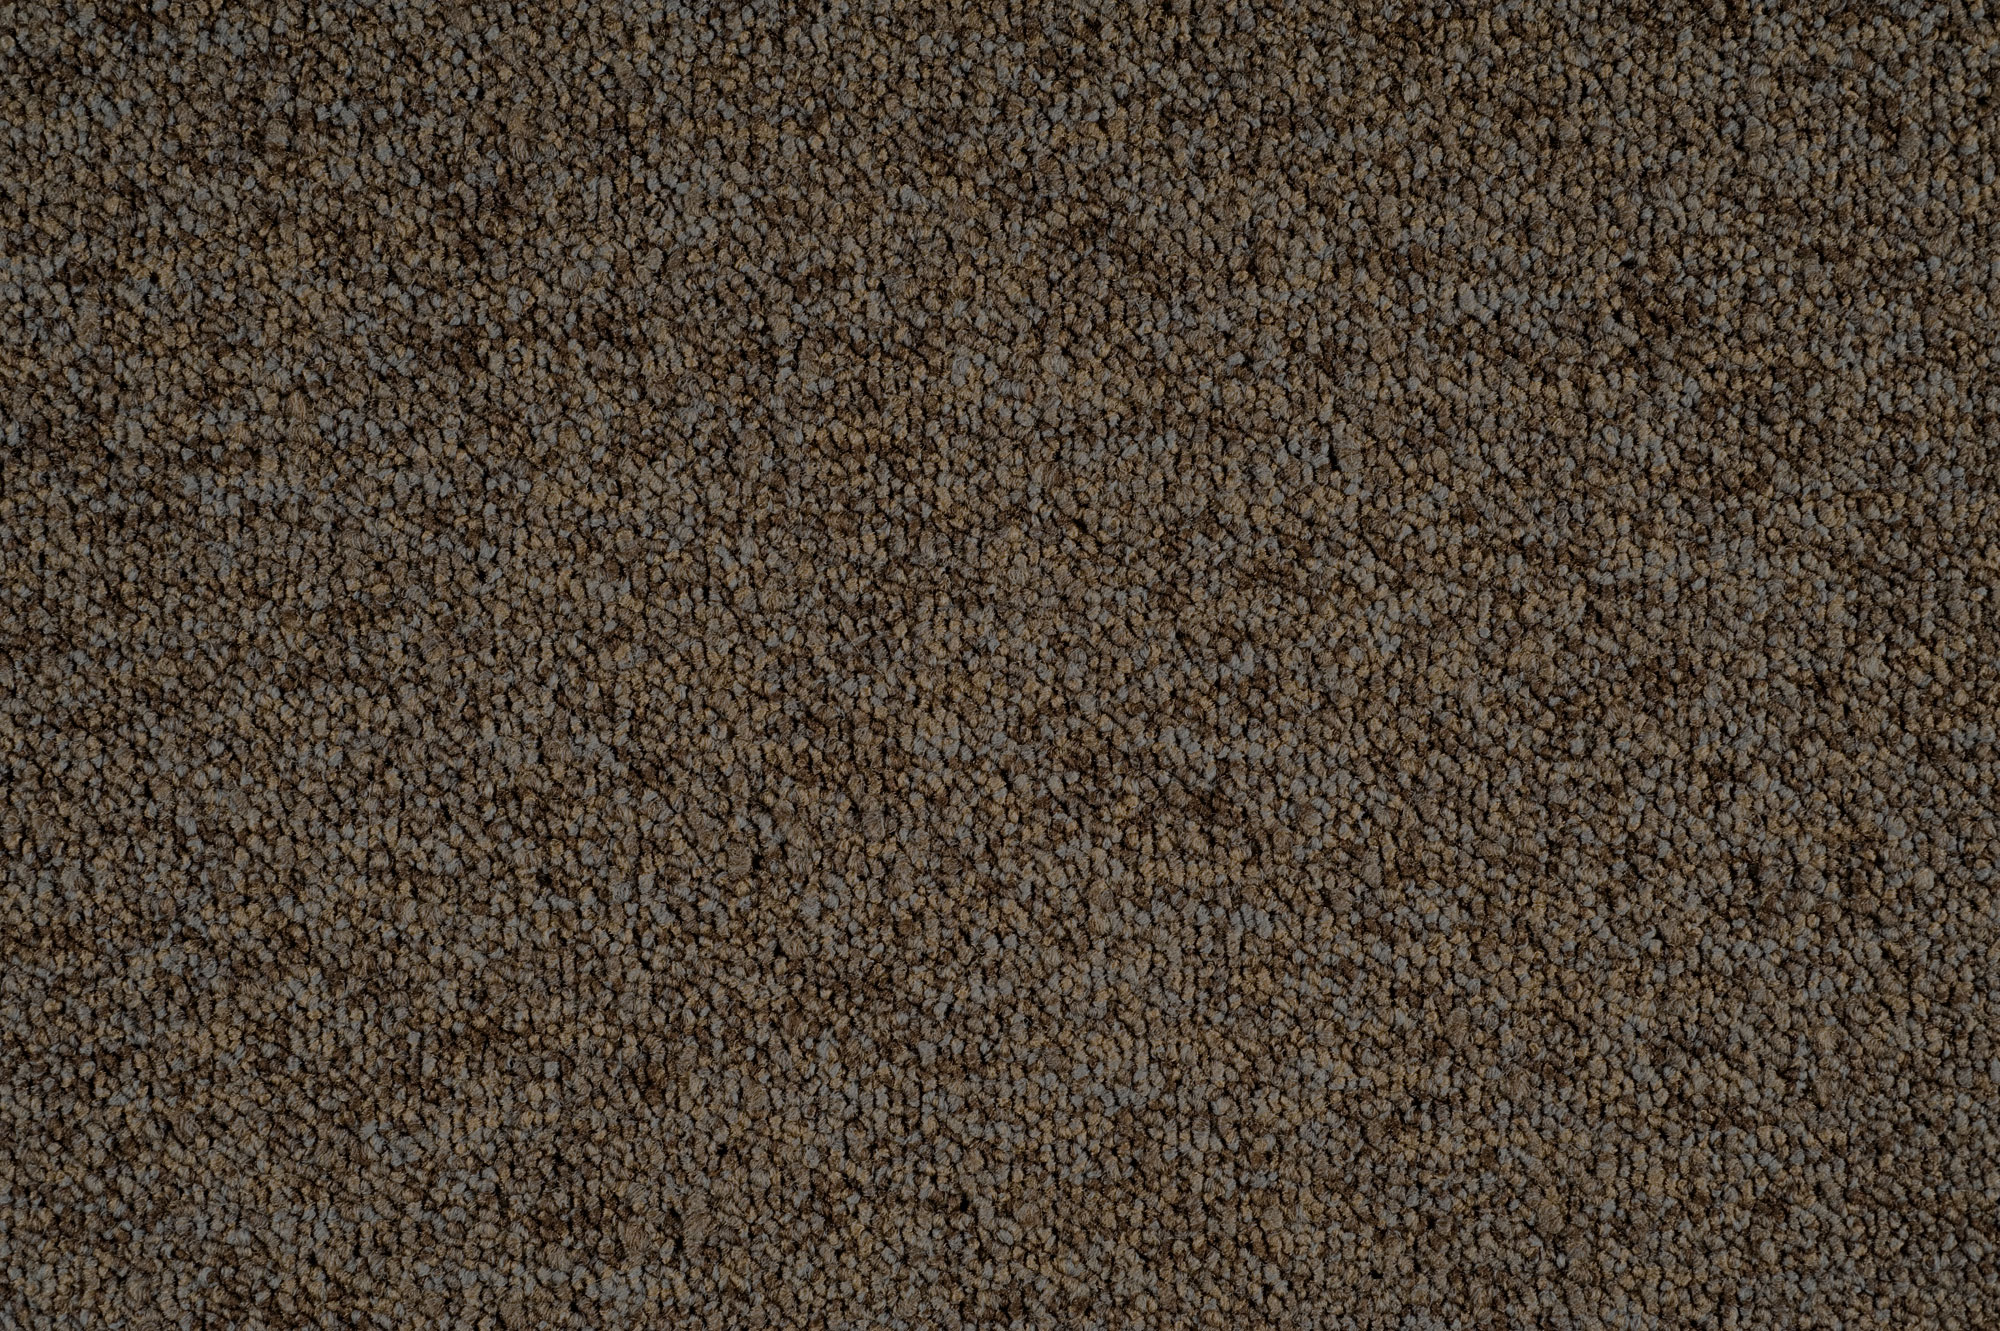 Esd carpet stops static for Carpet texture high resolution